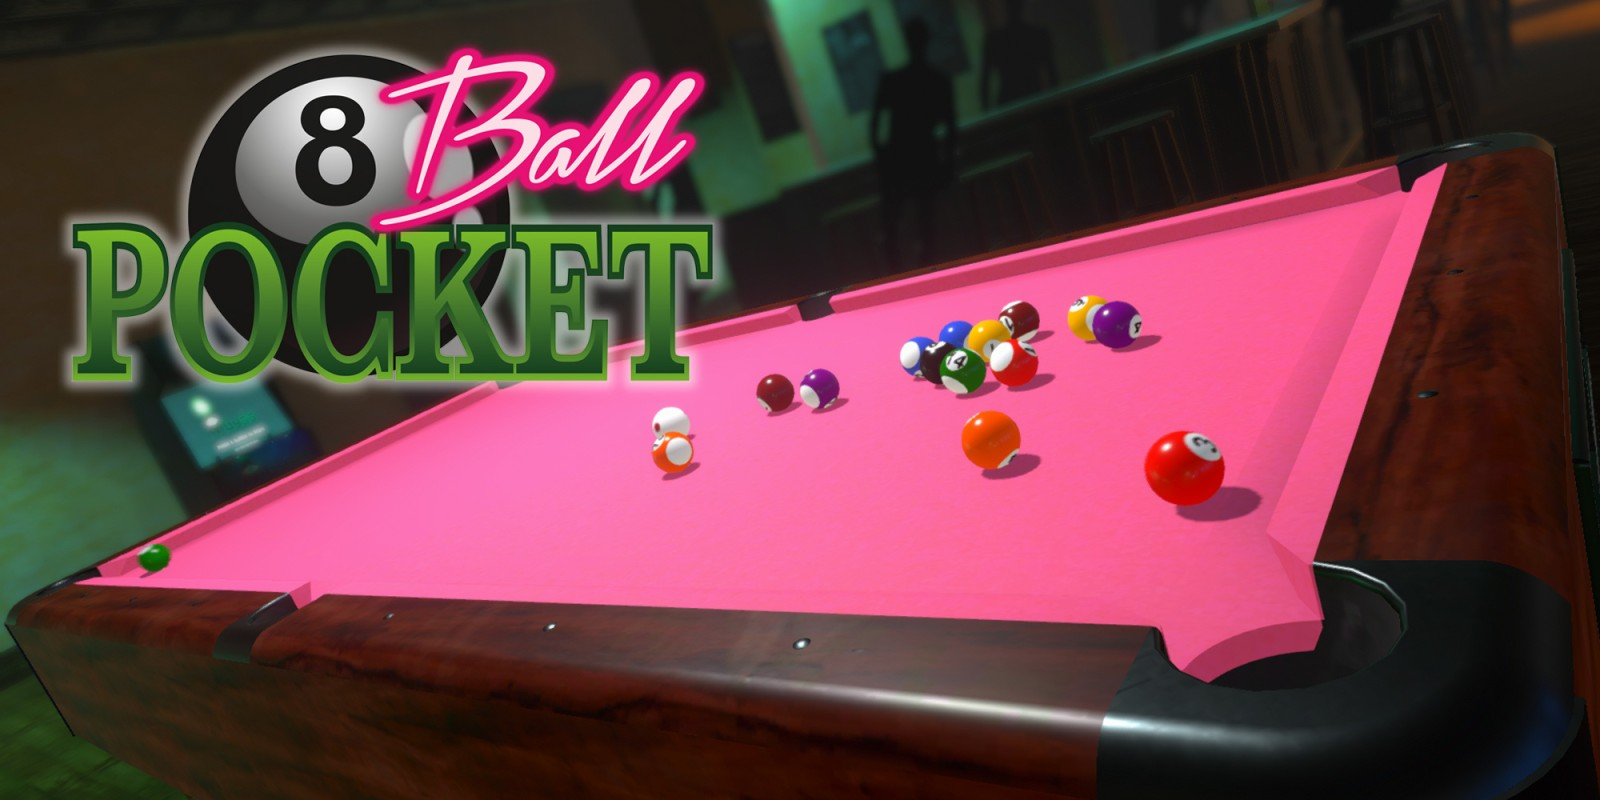 8-Ball Pocket